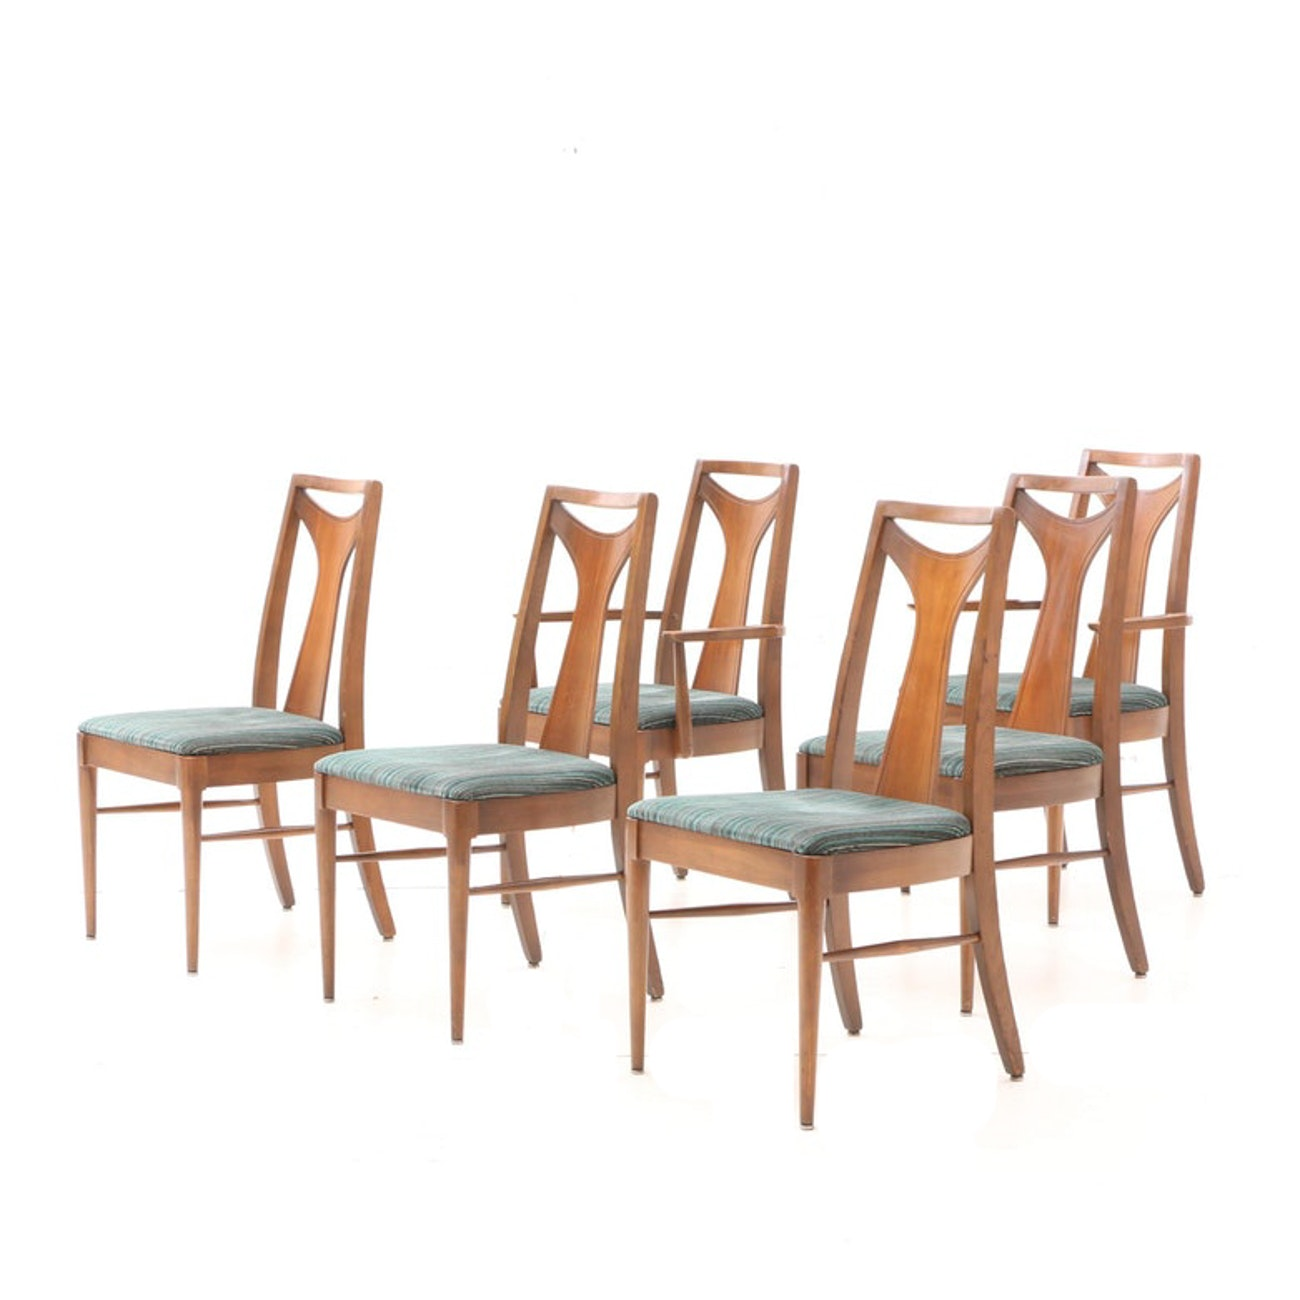 Six Mid Century Modern Walnut Dining Chairs